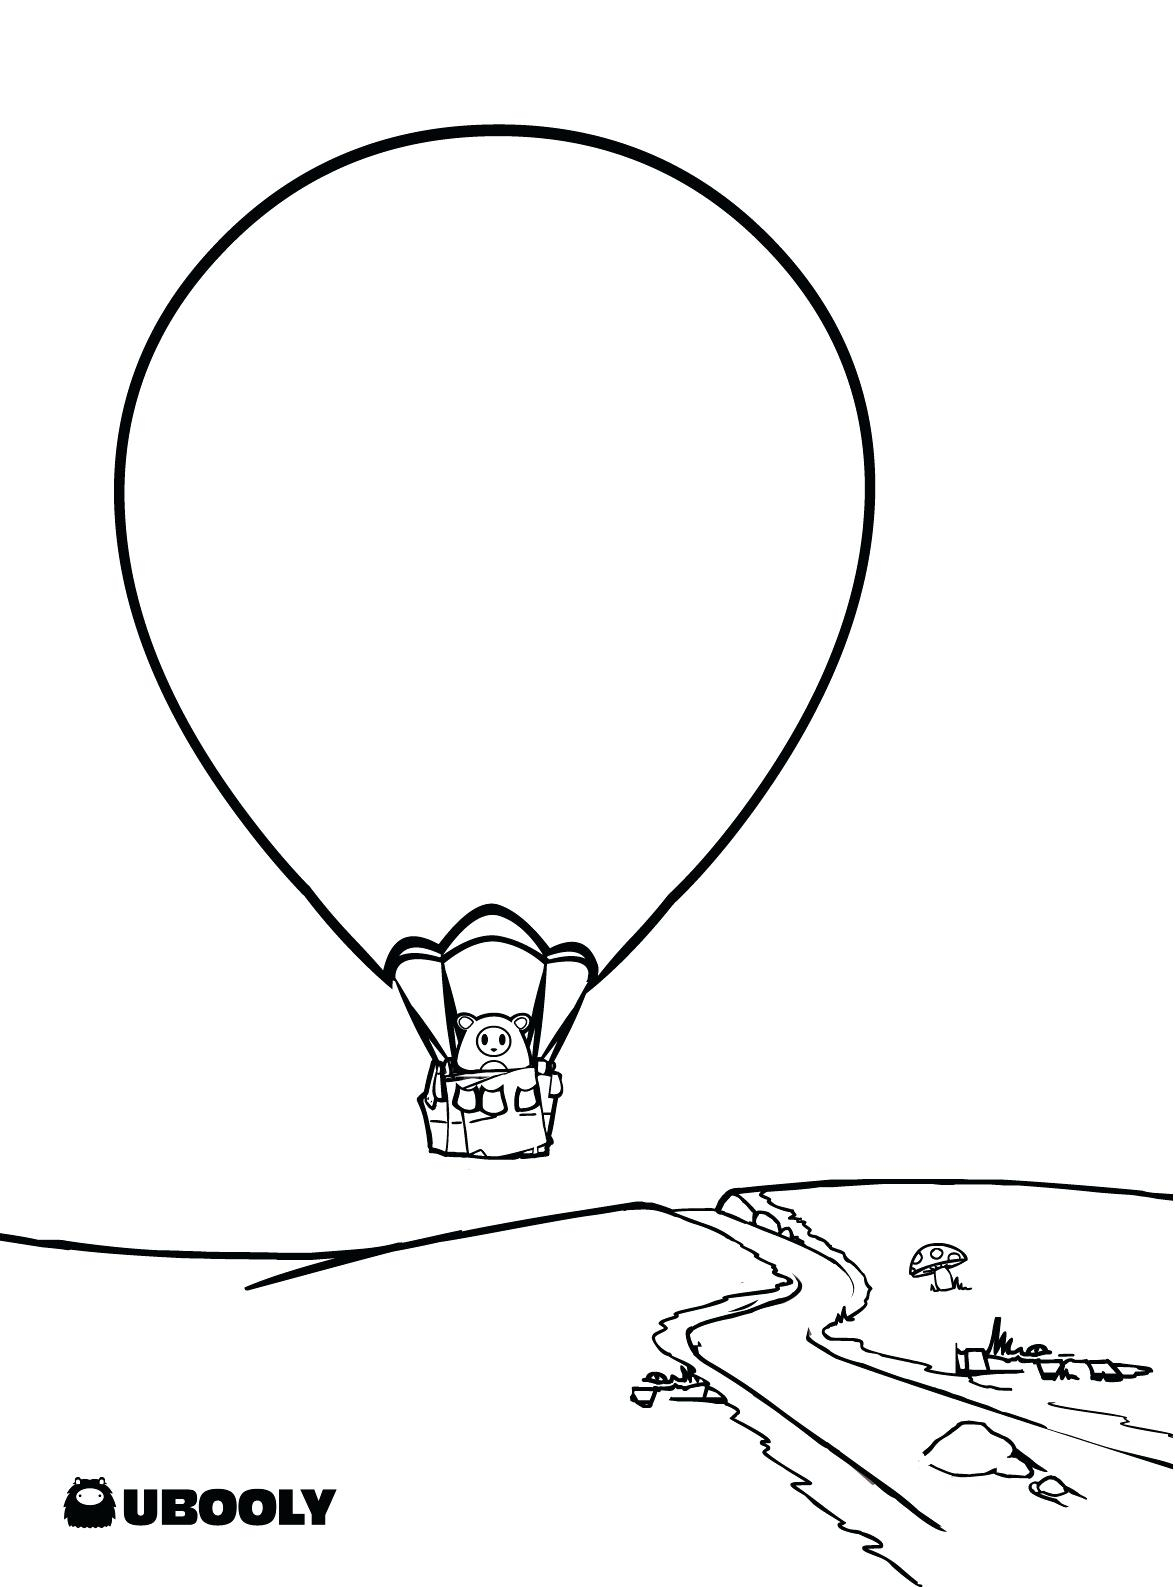 Hot Air Balloon Coloring Pages with Stars Image Free Printable Kids Printable Of Fresh Hot Air Balloons Coloring Pages Collection to Print